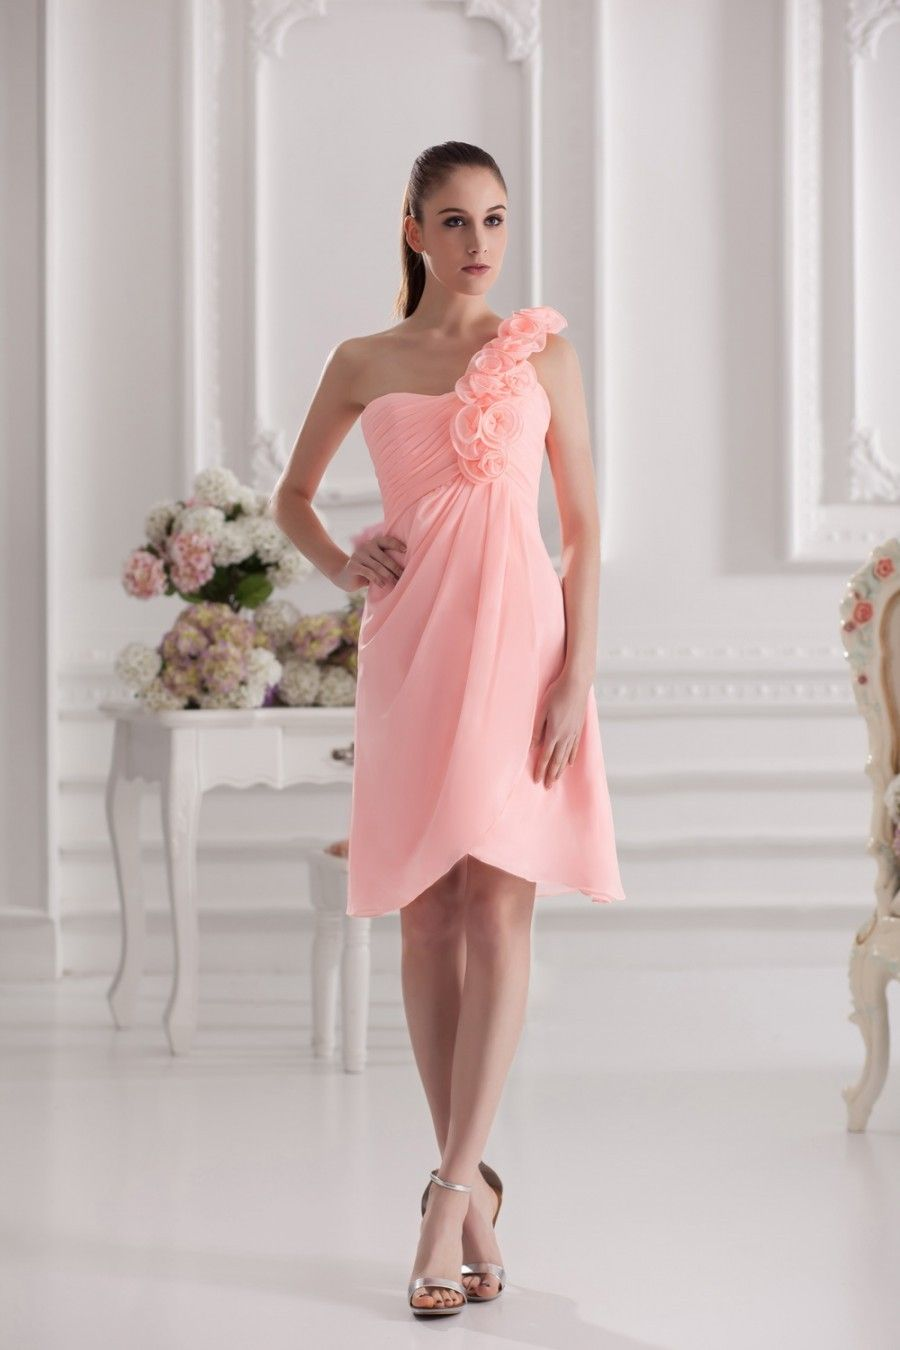 Sommer One Shoulder Blumen Kurzes Cocktailkleid Aus Chiffon $311.99 ...